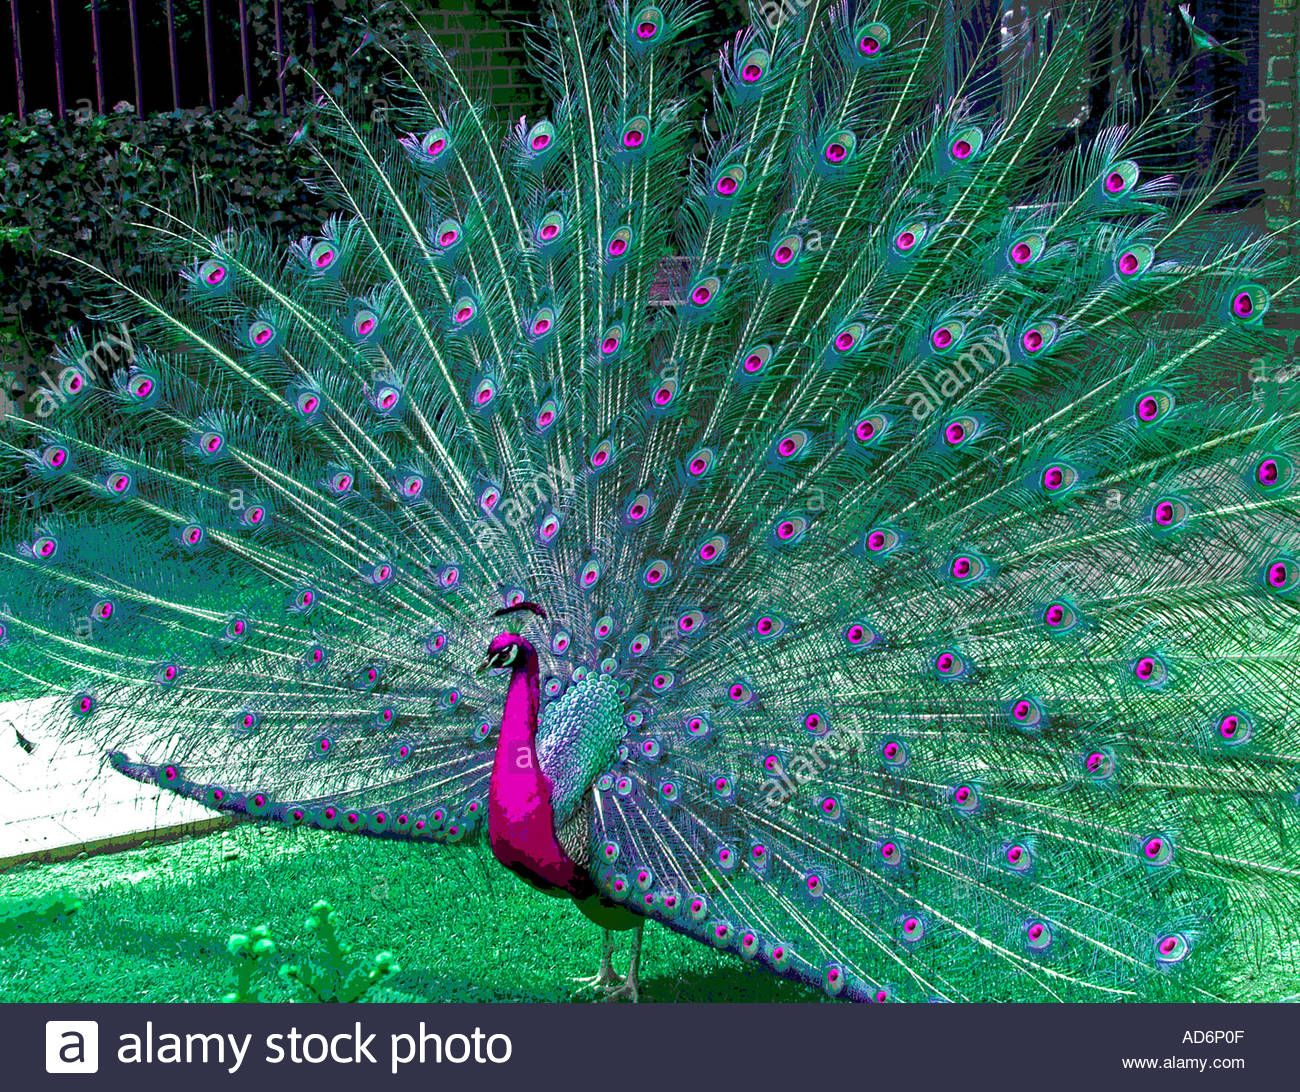 peacock-grounds-for-sculpture-park-new-jersey-usa-north-america-AD6P0F.jpg (1300×1092)